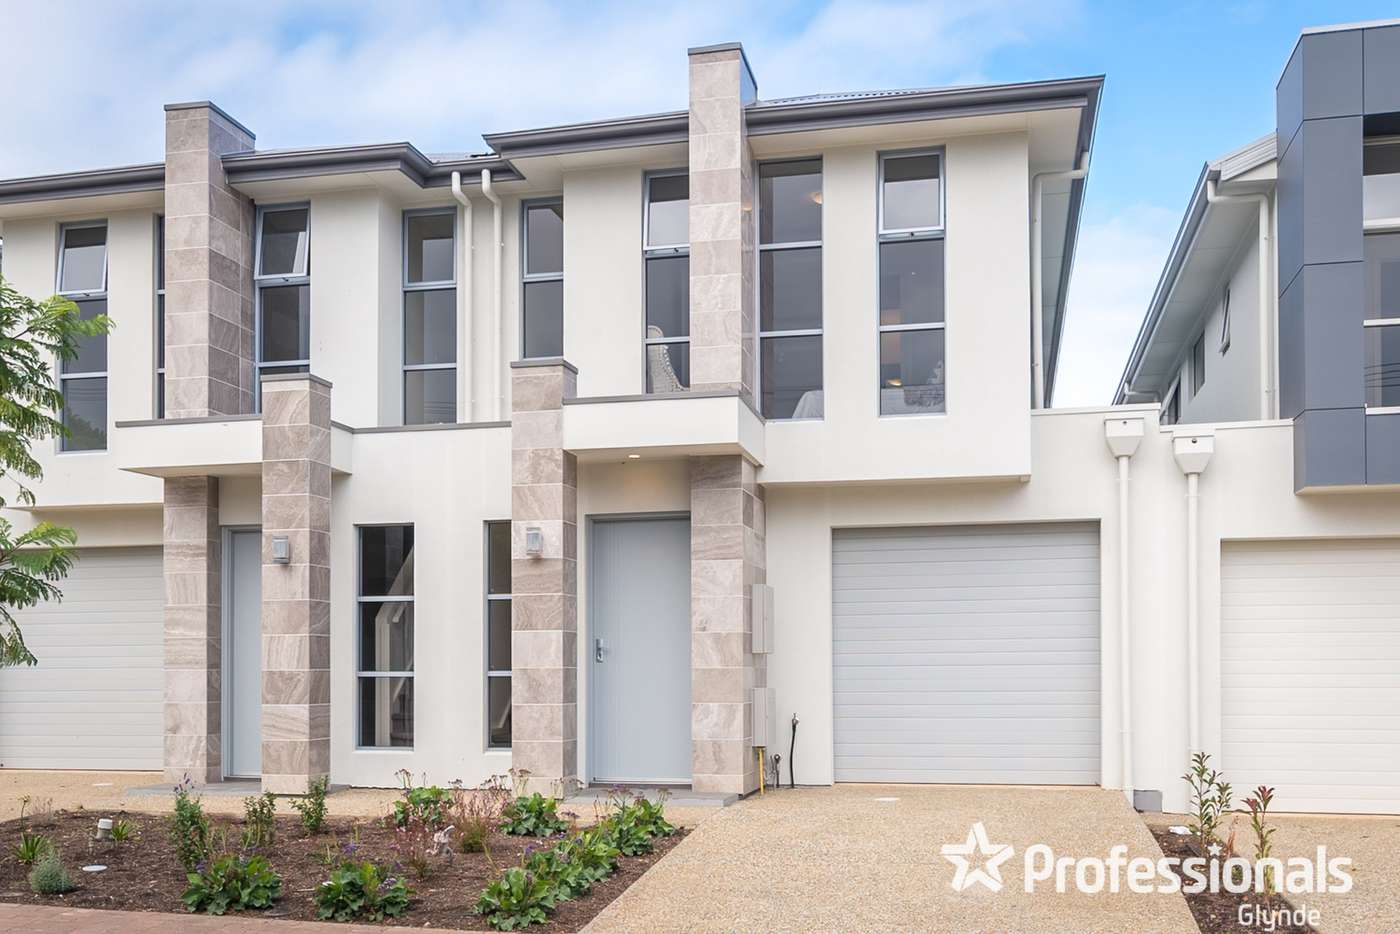 Main view of Homely house listing, 20-24 Verco Avenue, Campbelltown SA 5074